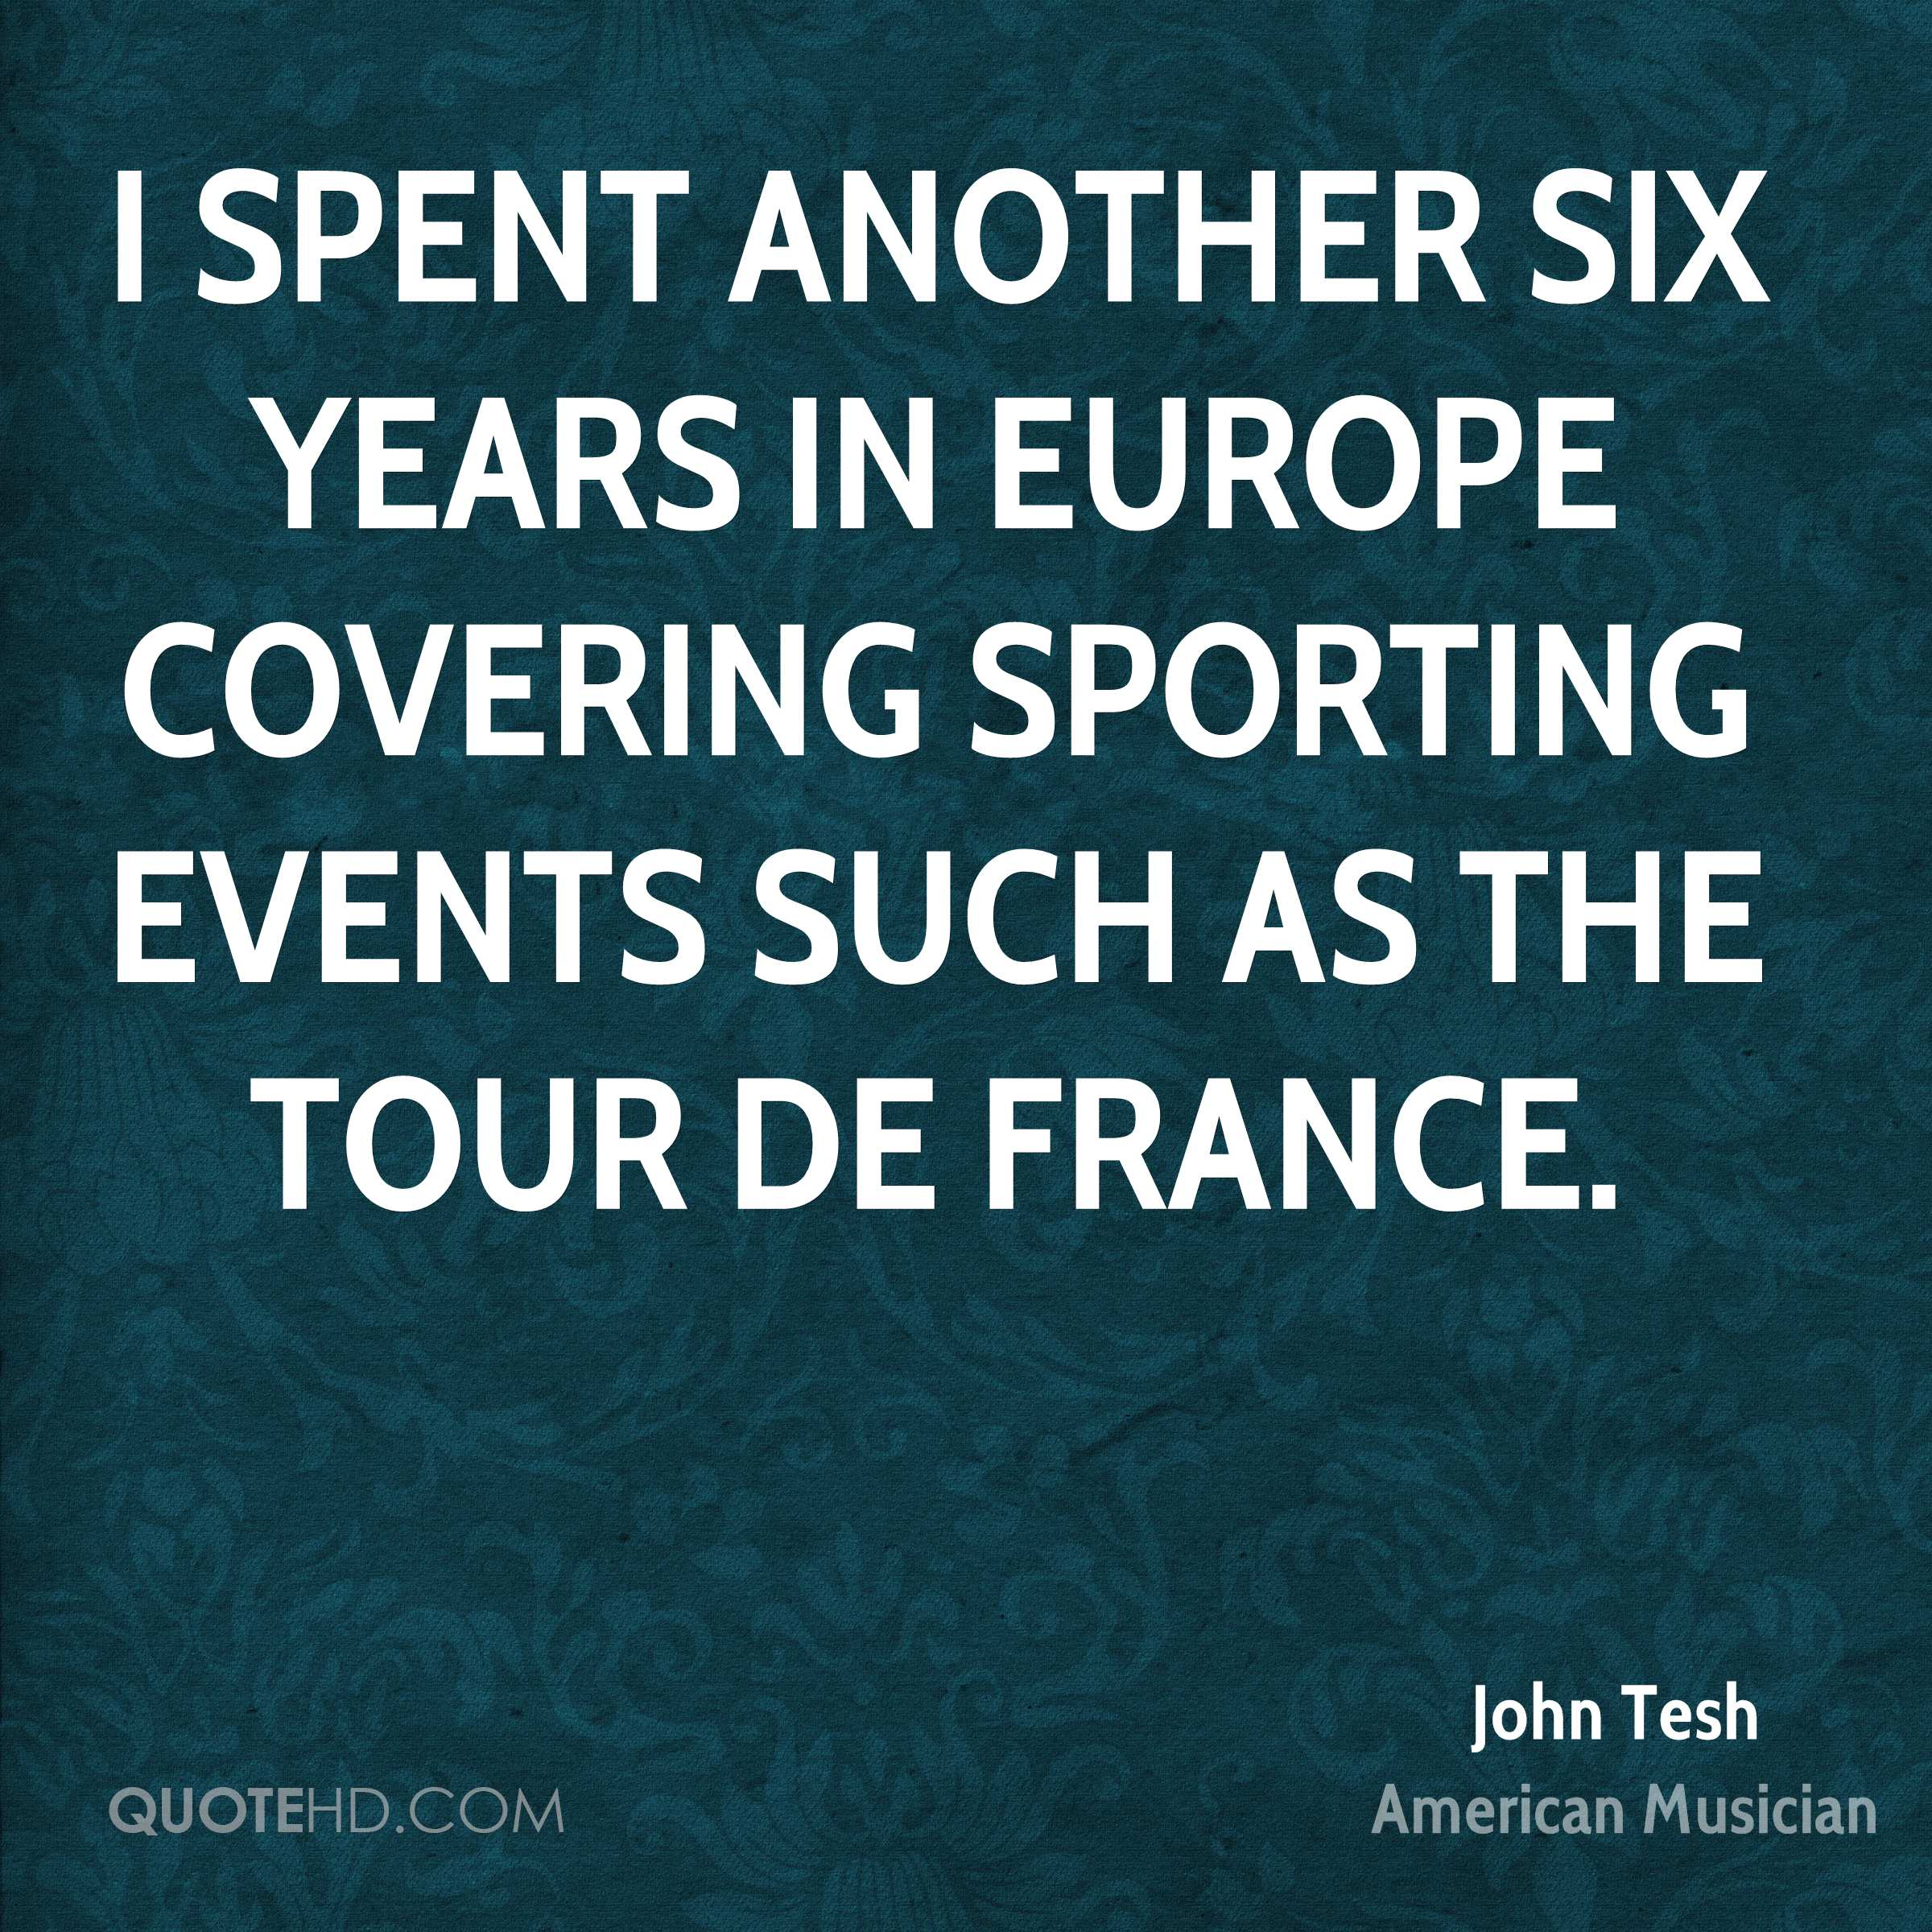 I spent another six years in Europe covering sporting events such as the Tour de France.